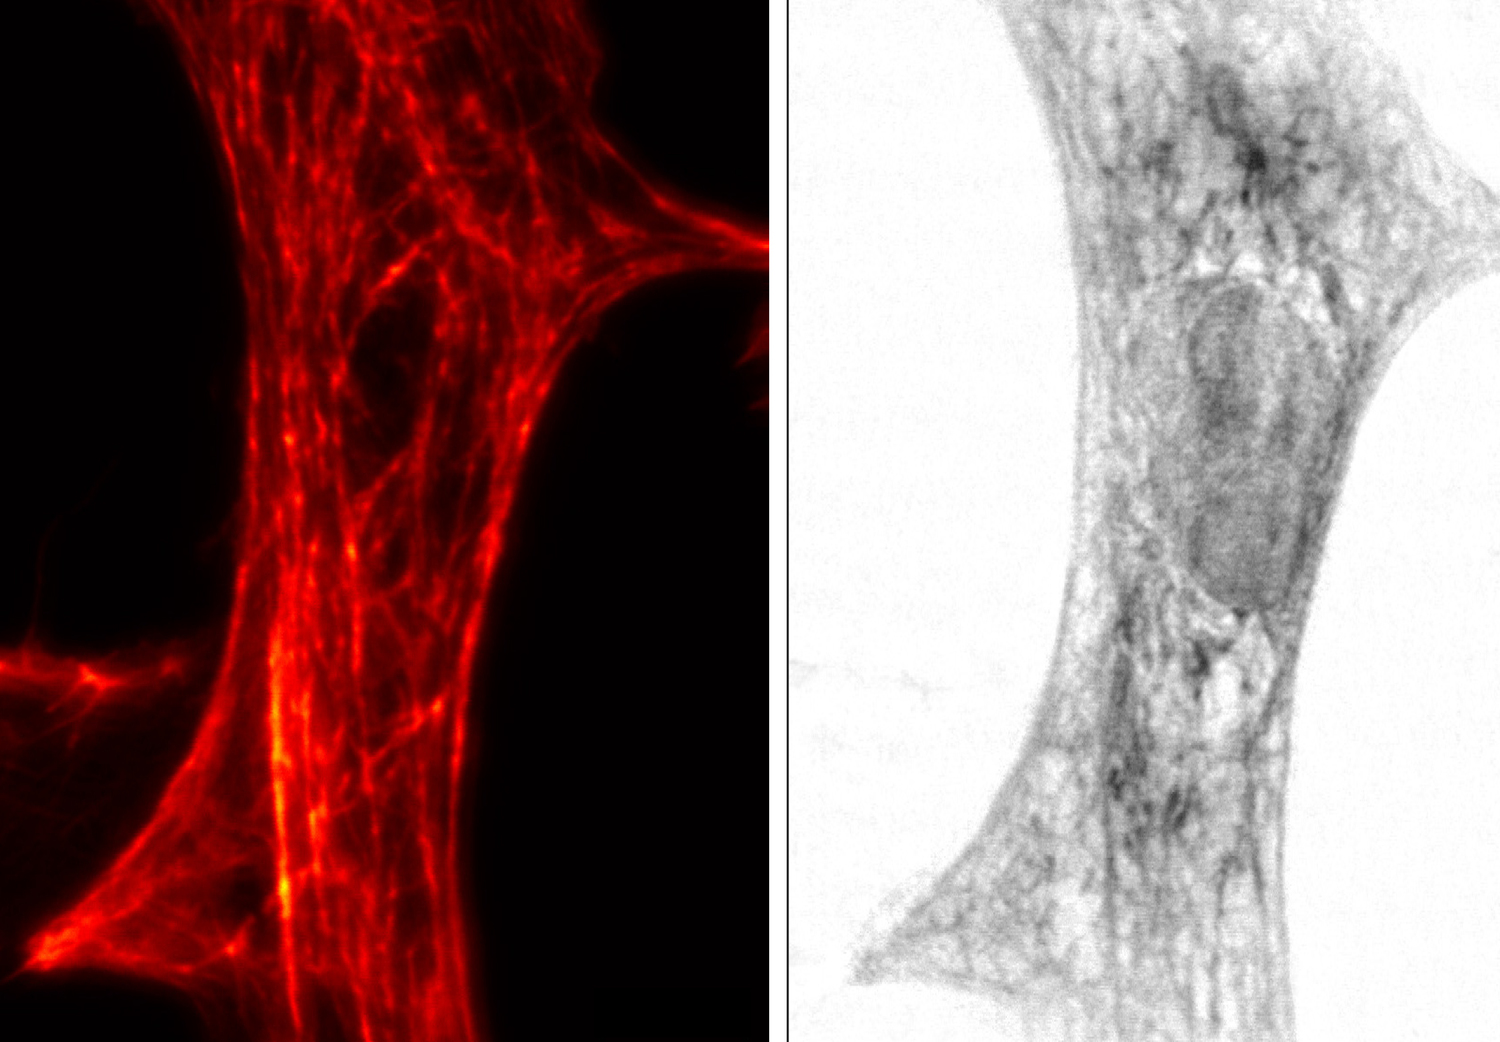 STED image (left) and x-ray imaging (right) of the same cardiac tissue cell from a rat.